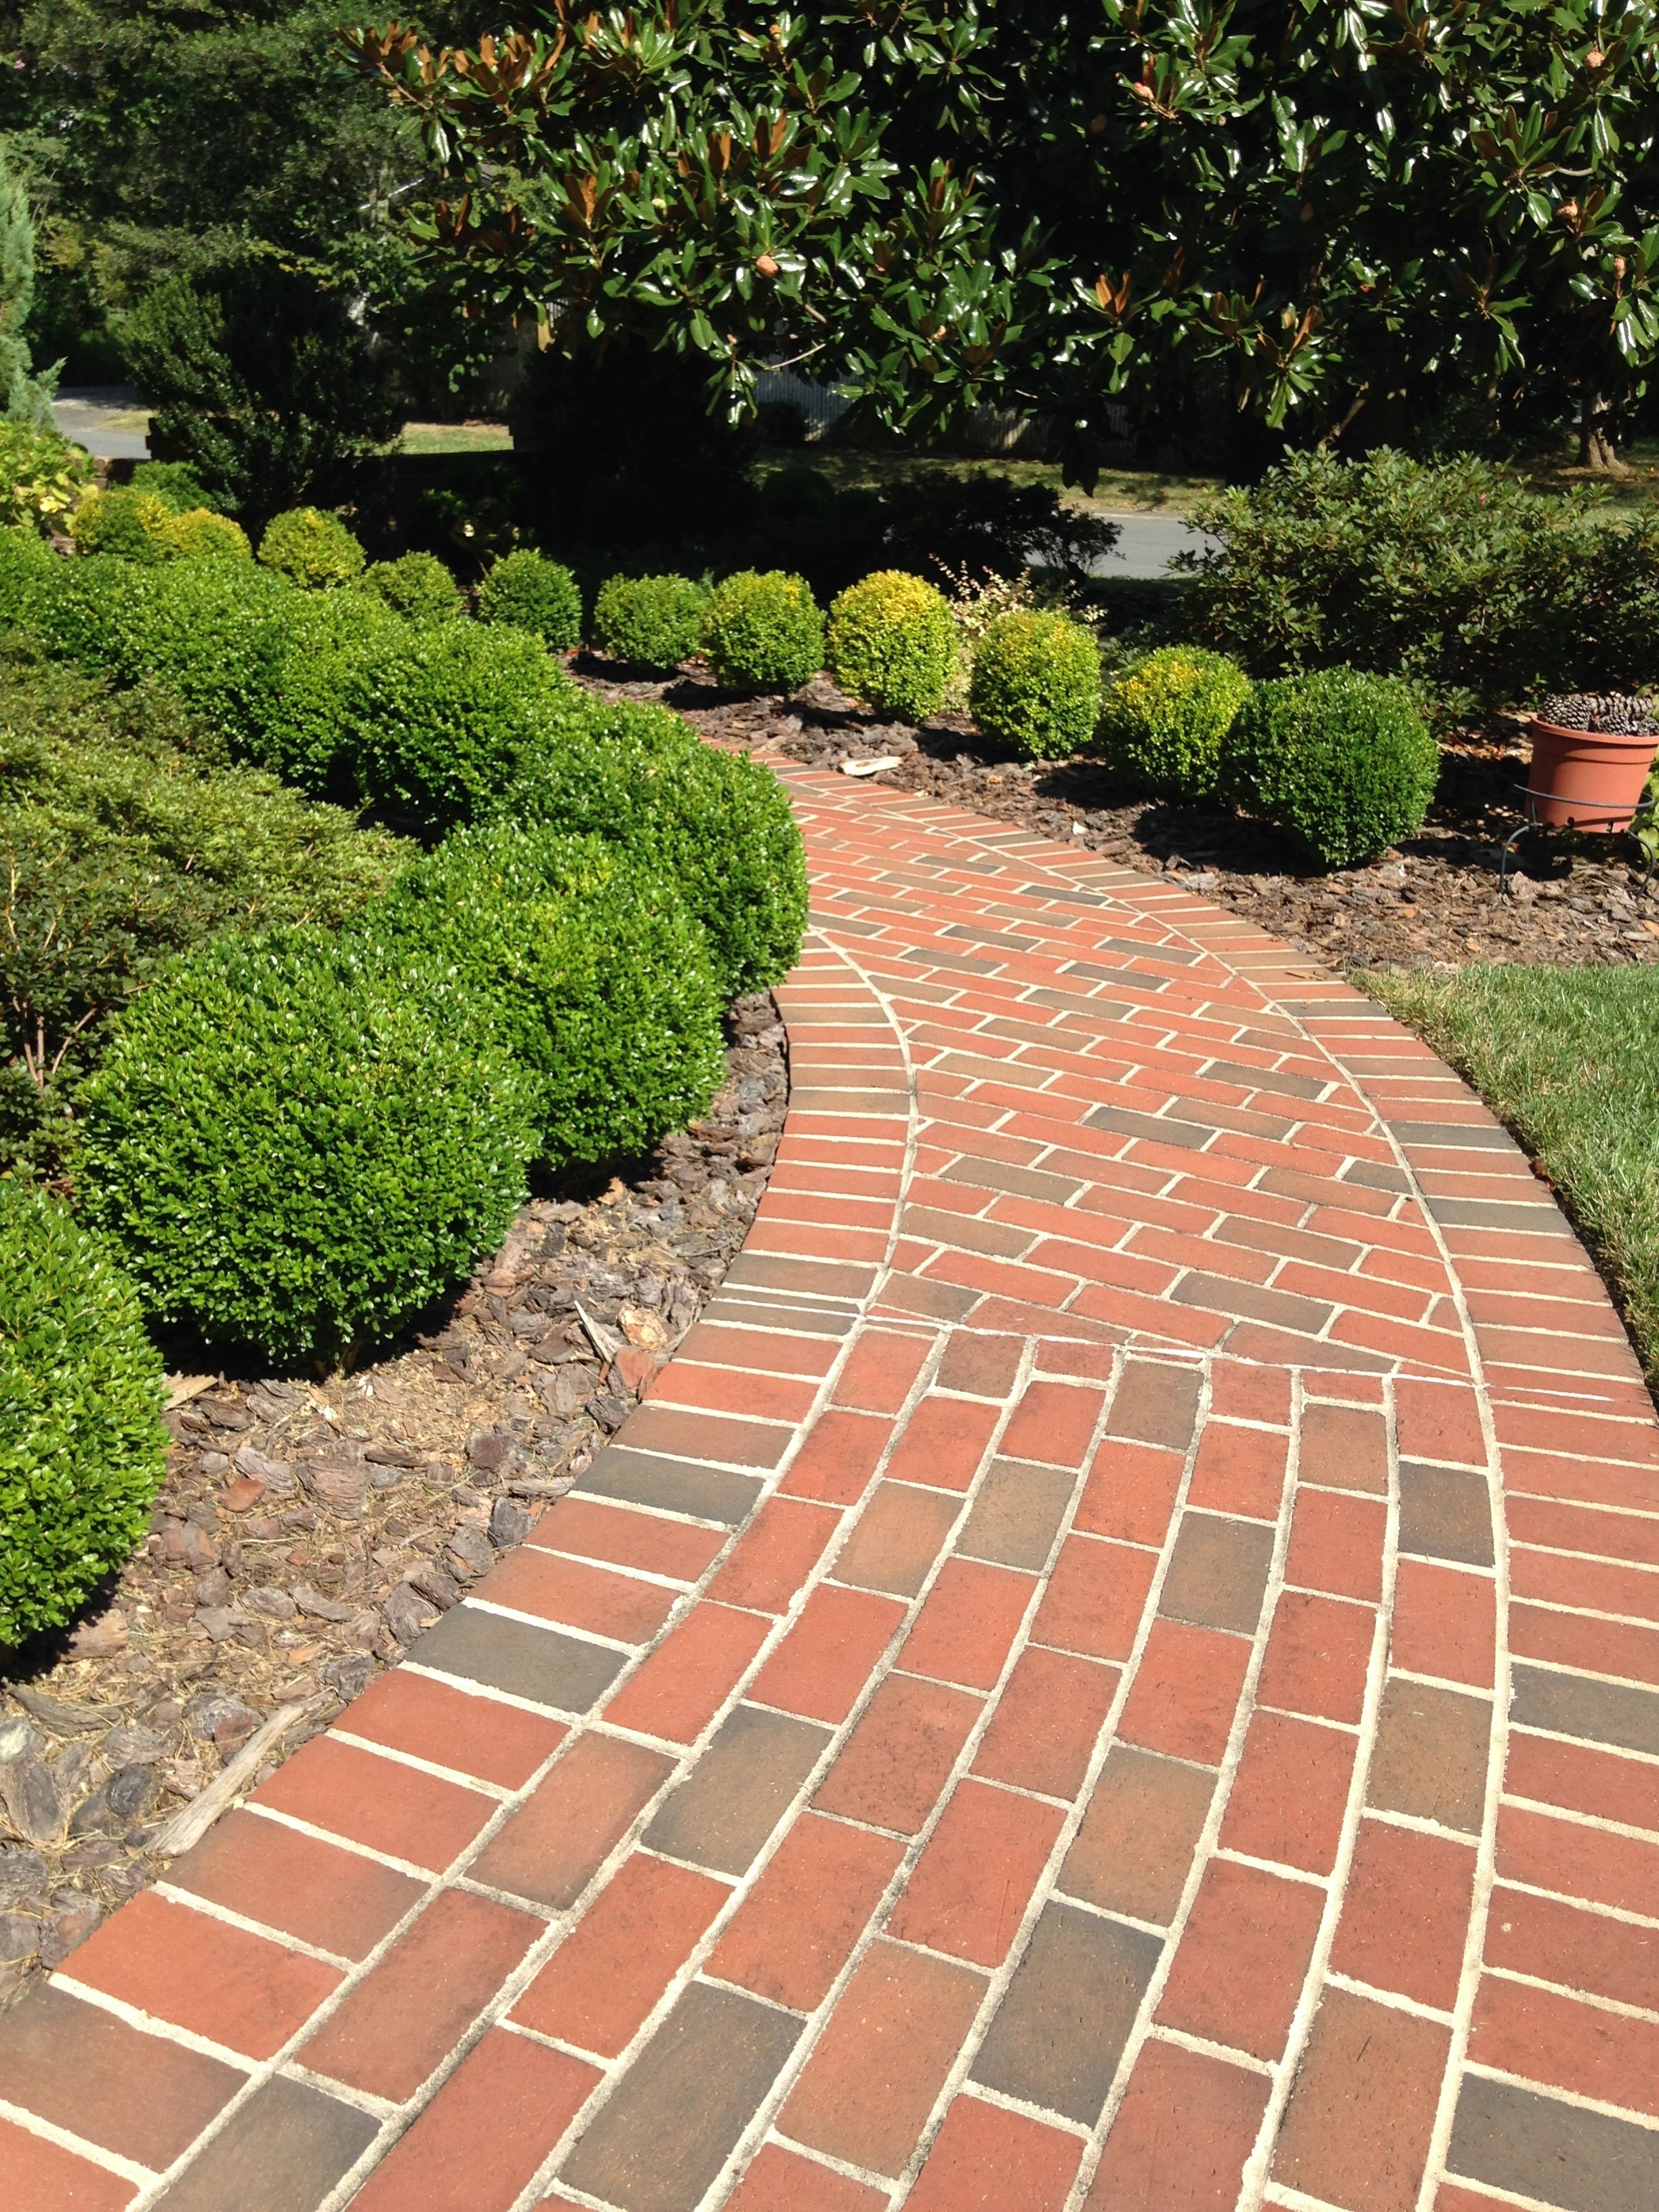 New patio and landscaping close up of the pavers flickr - Brick Pavers Make Curves And Patterns For Your Garden Landscape Color Pathway Full Range